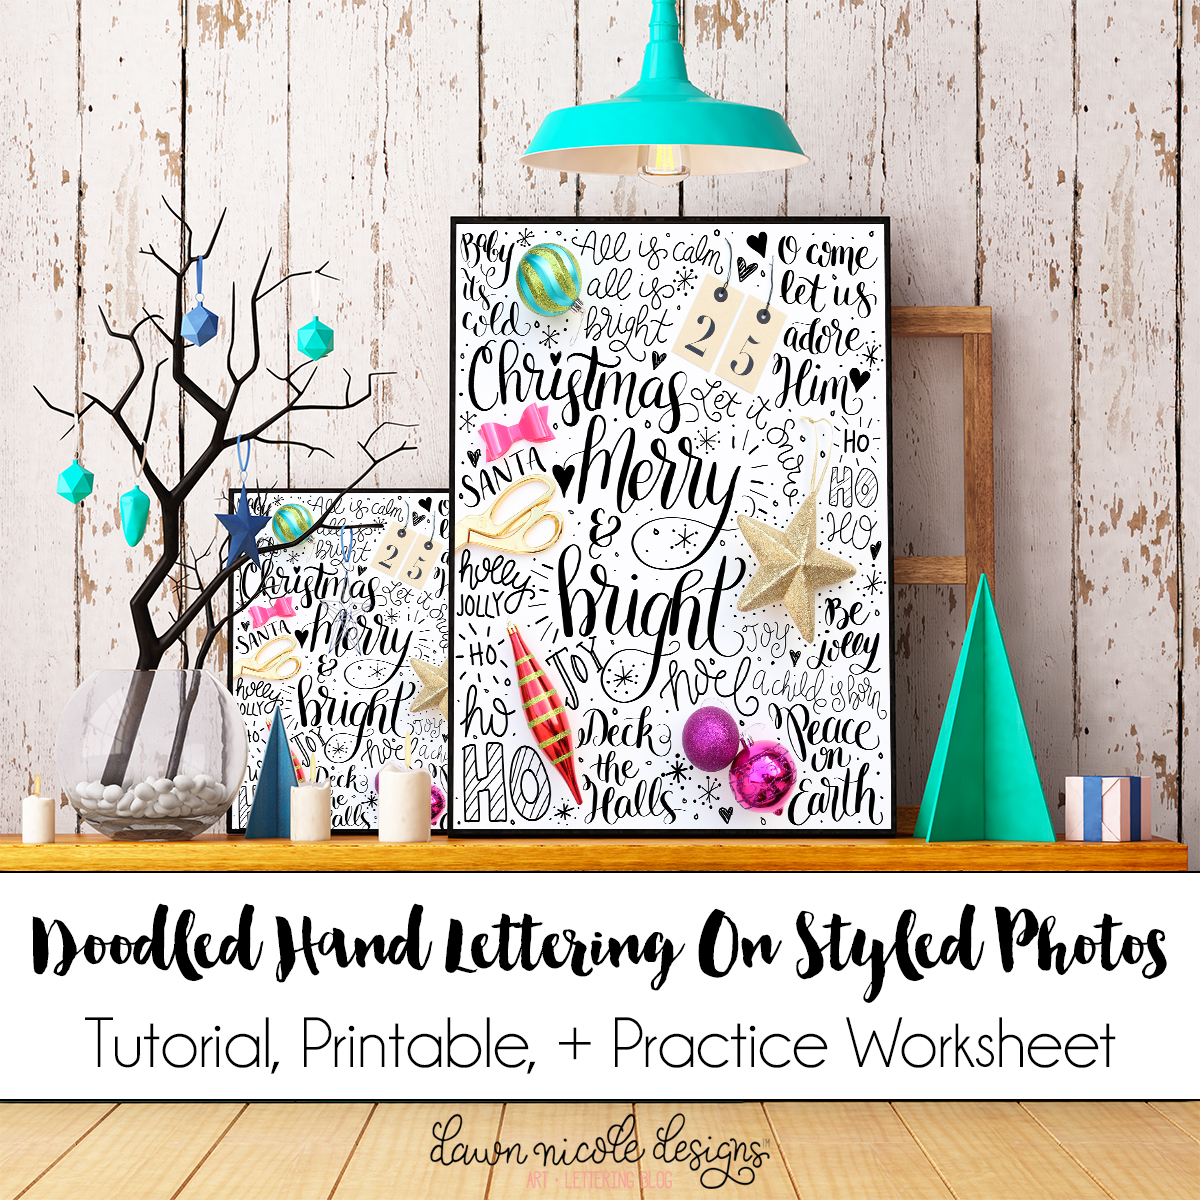 How to do Hand Lettering on Photos